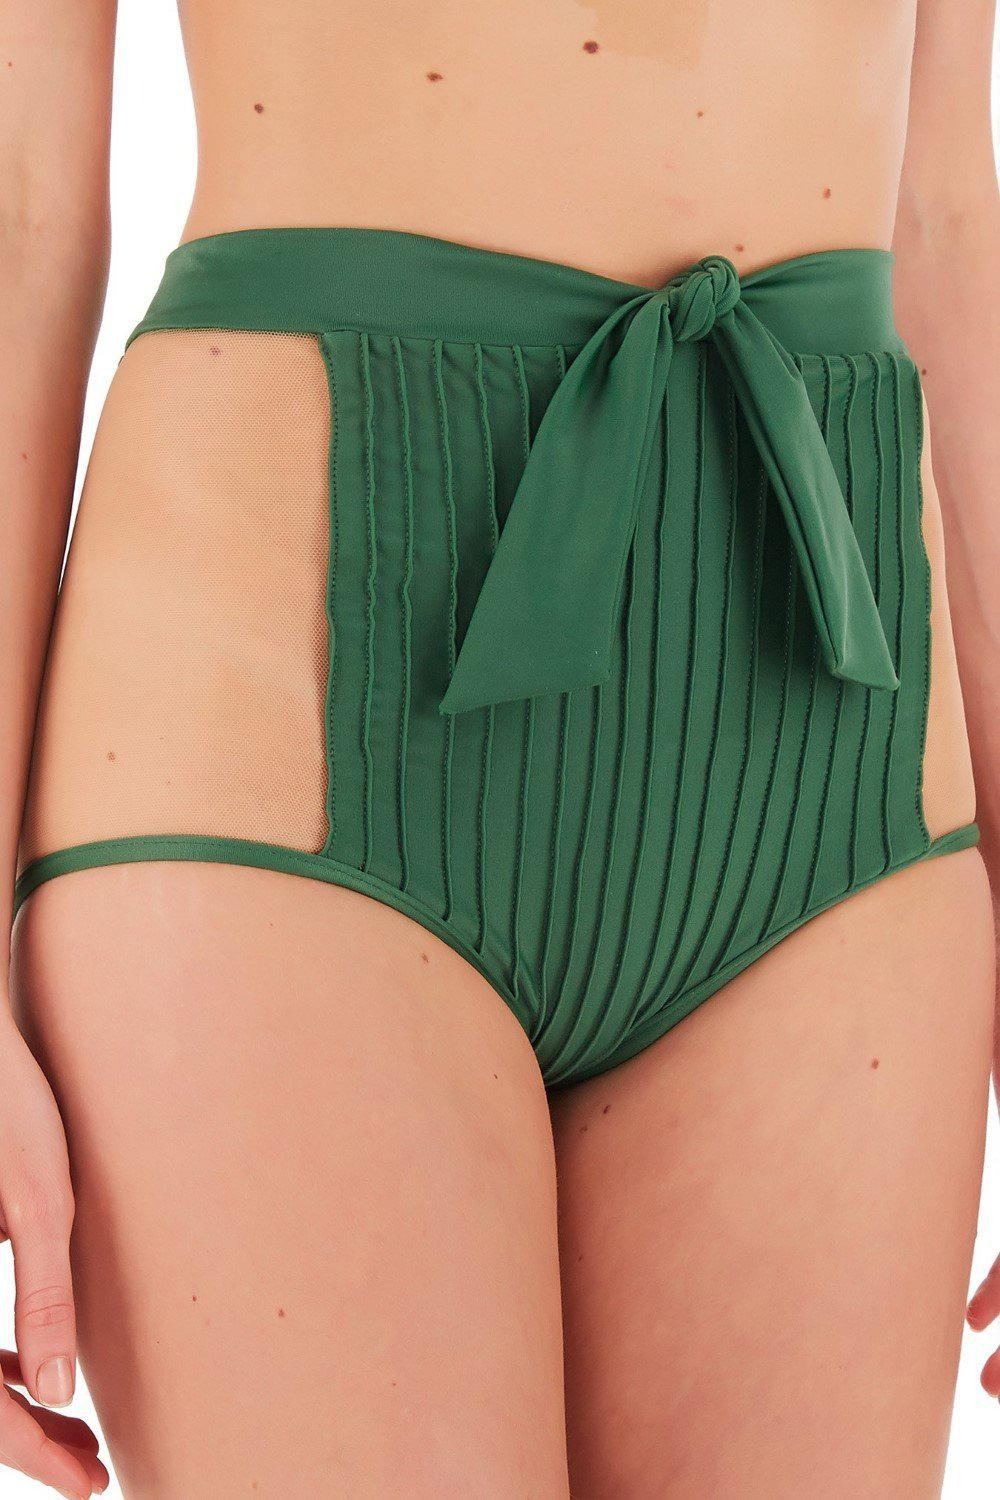 Fiore Solid Hot Pants Bikini with Tulle